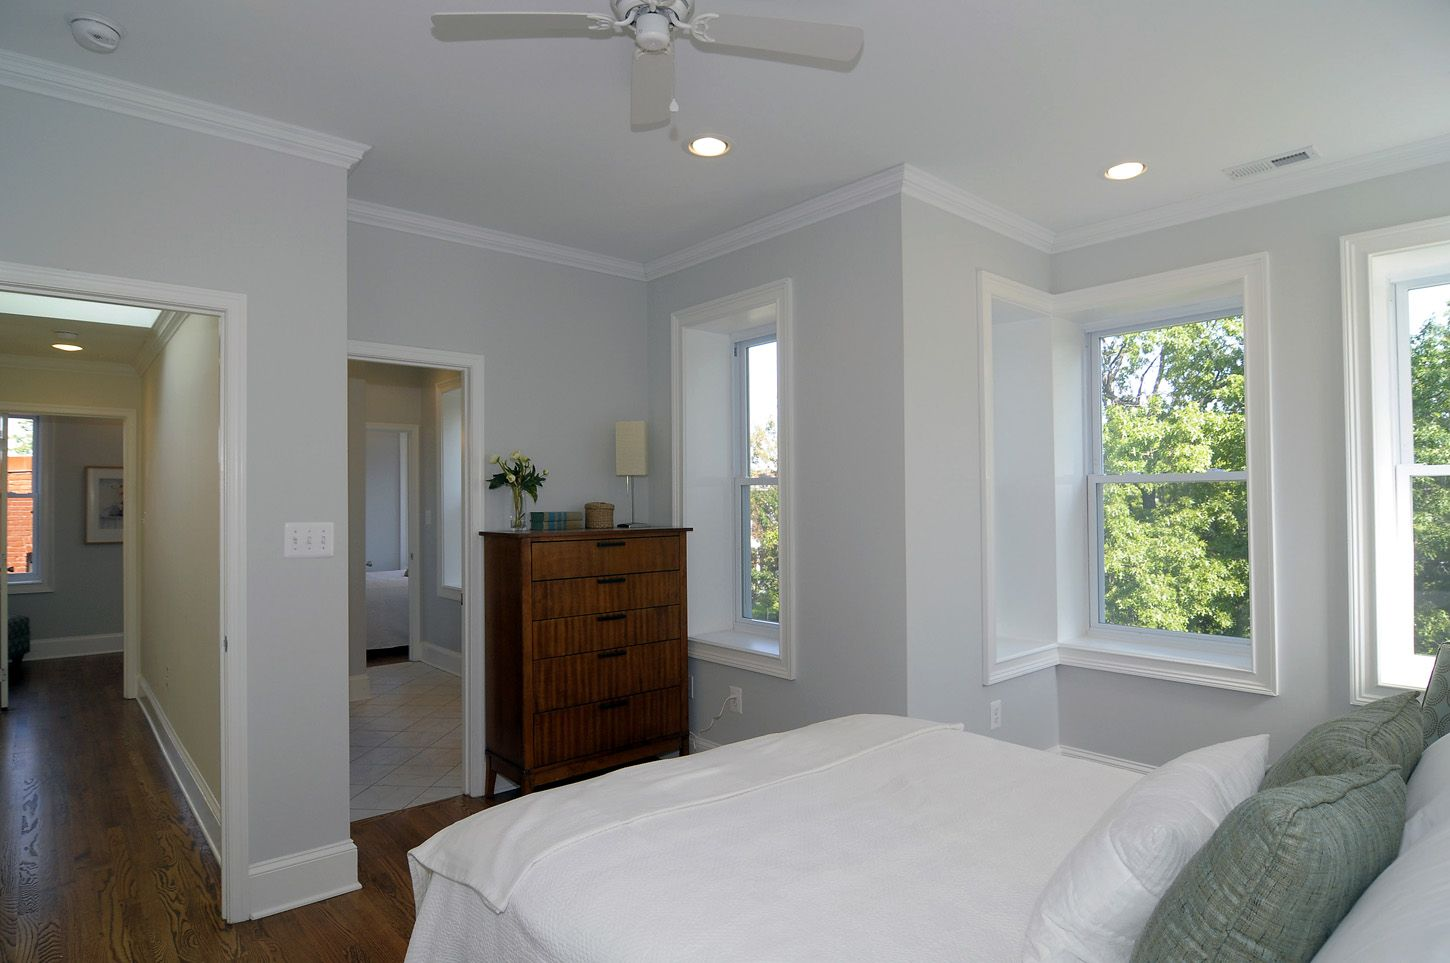 Benjamin moore horizon gray home design paint colors in 2019 - Shades of grey paint for bedroom ...